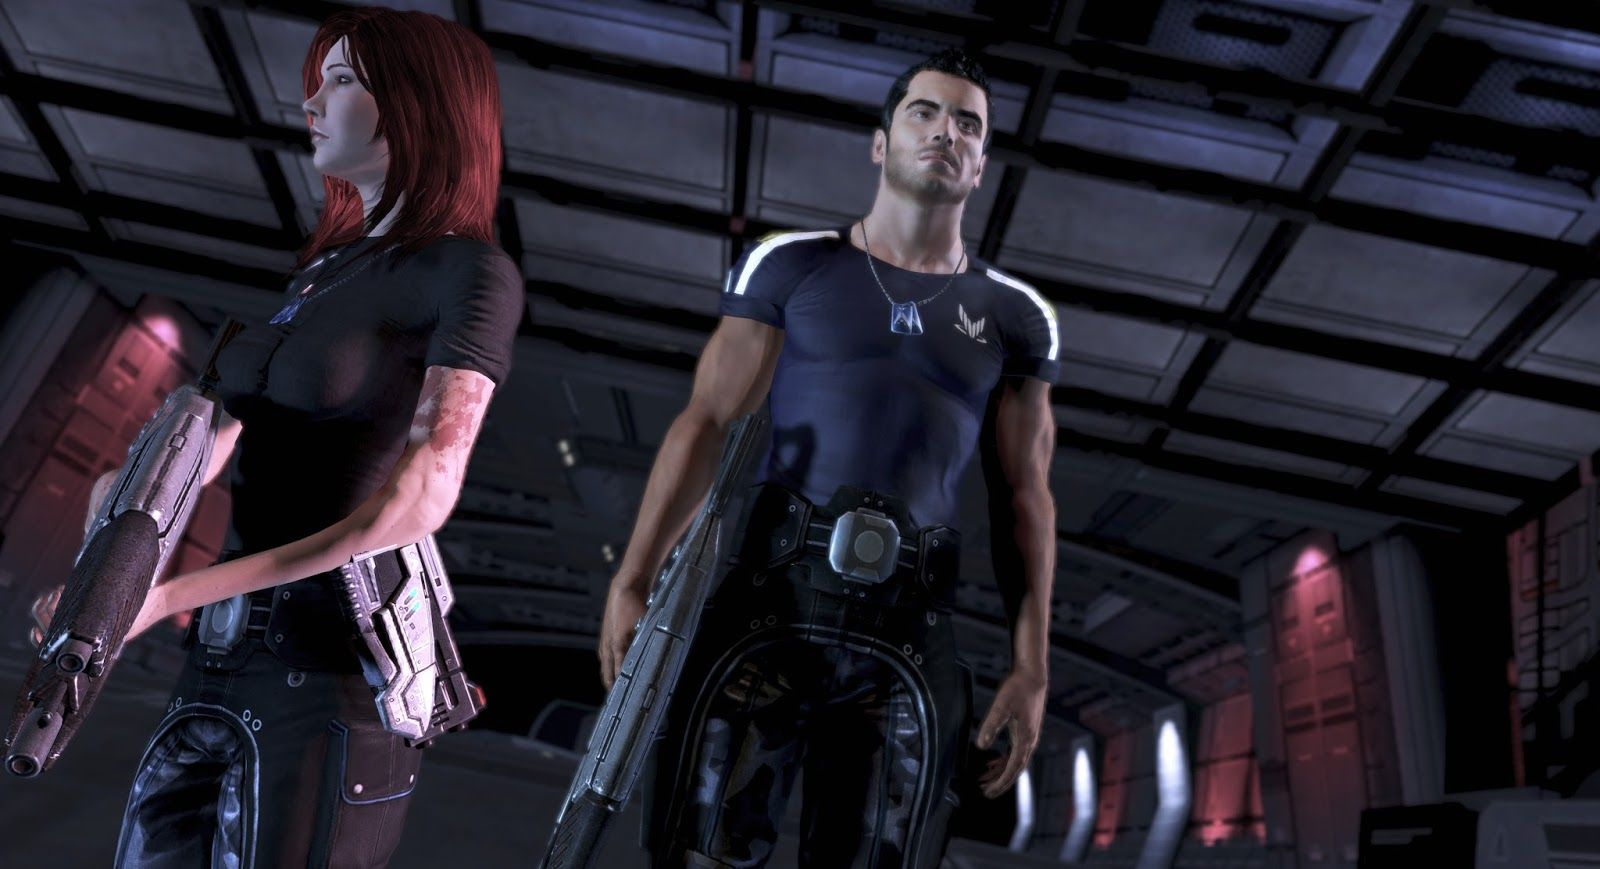 Mass Effect 3 Casual Outfits Mod